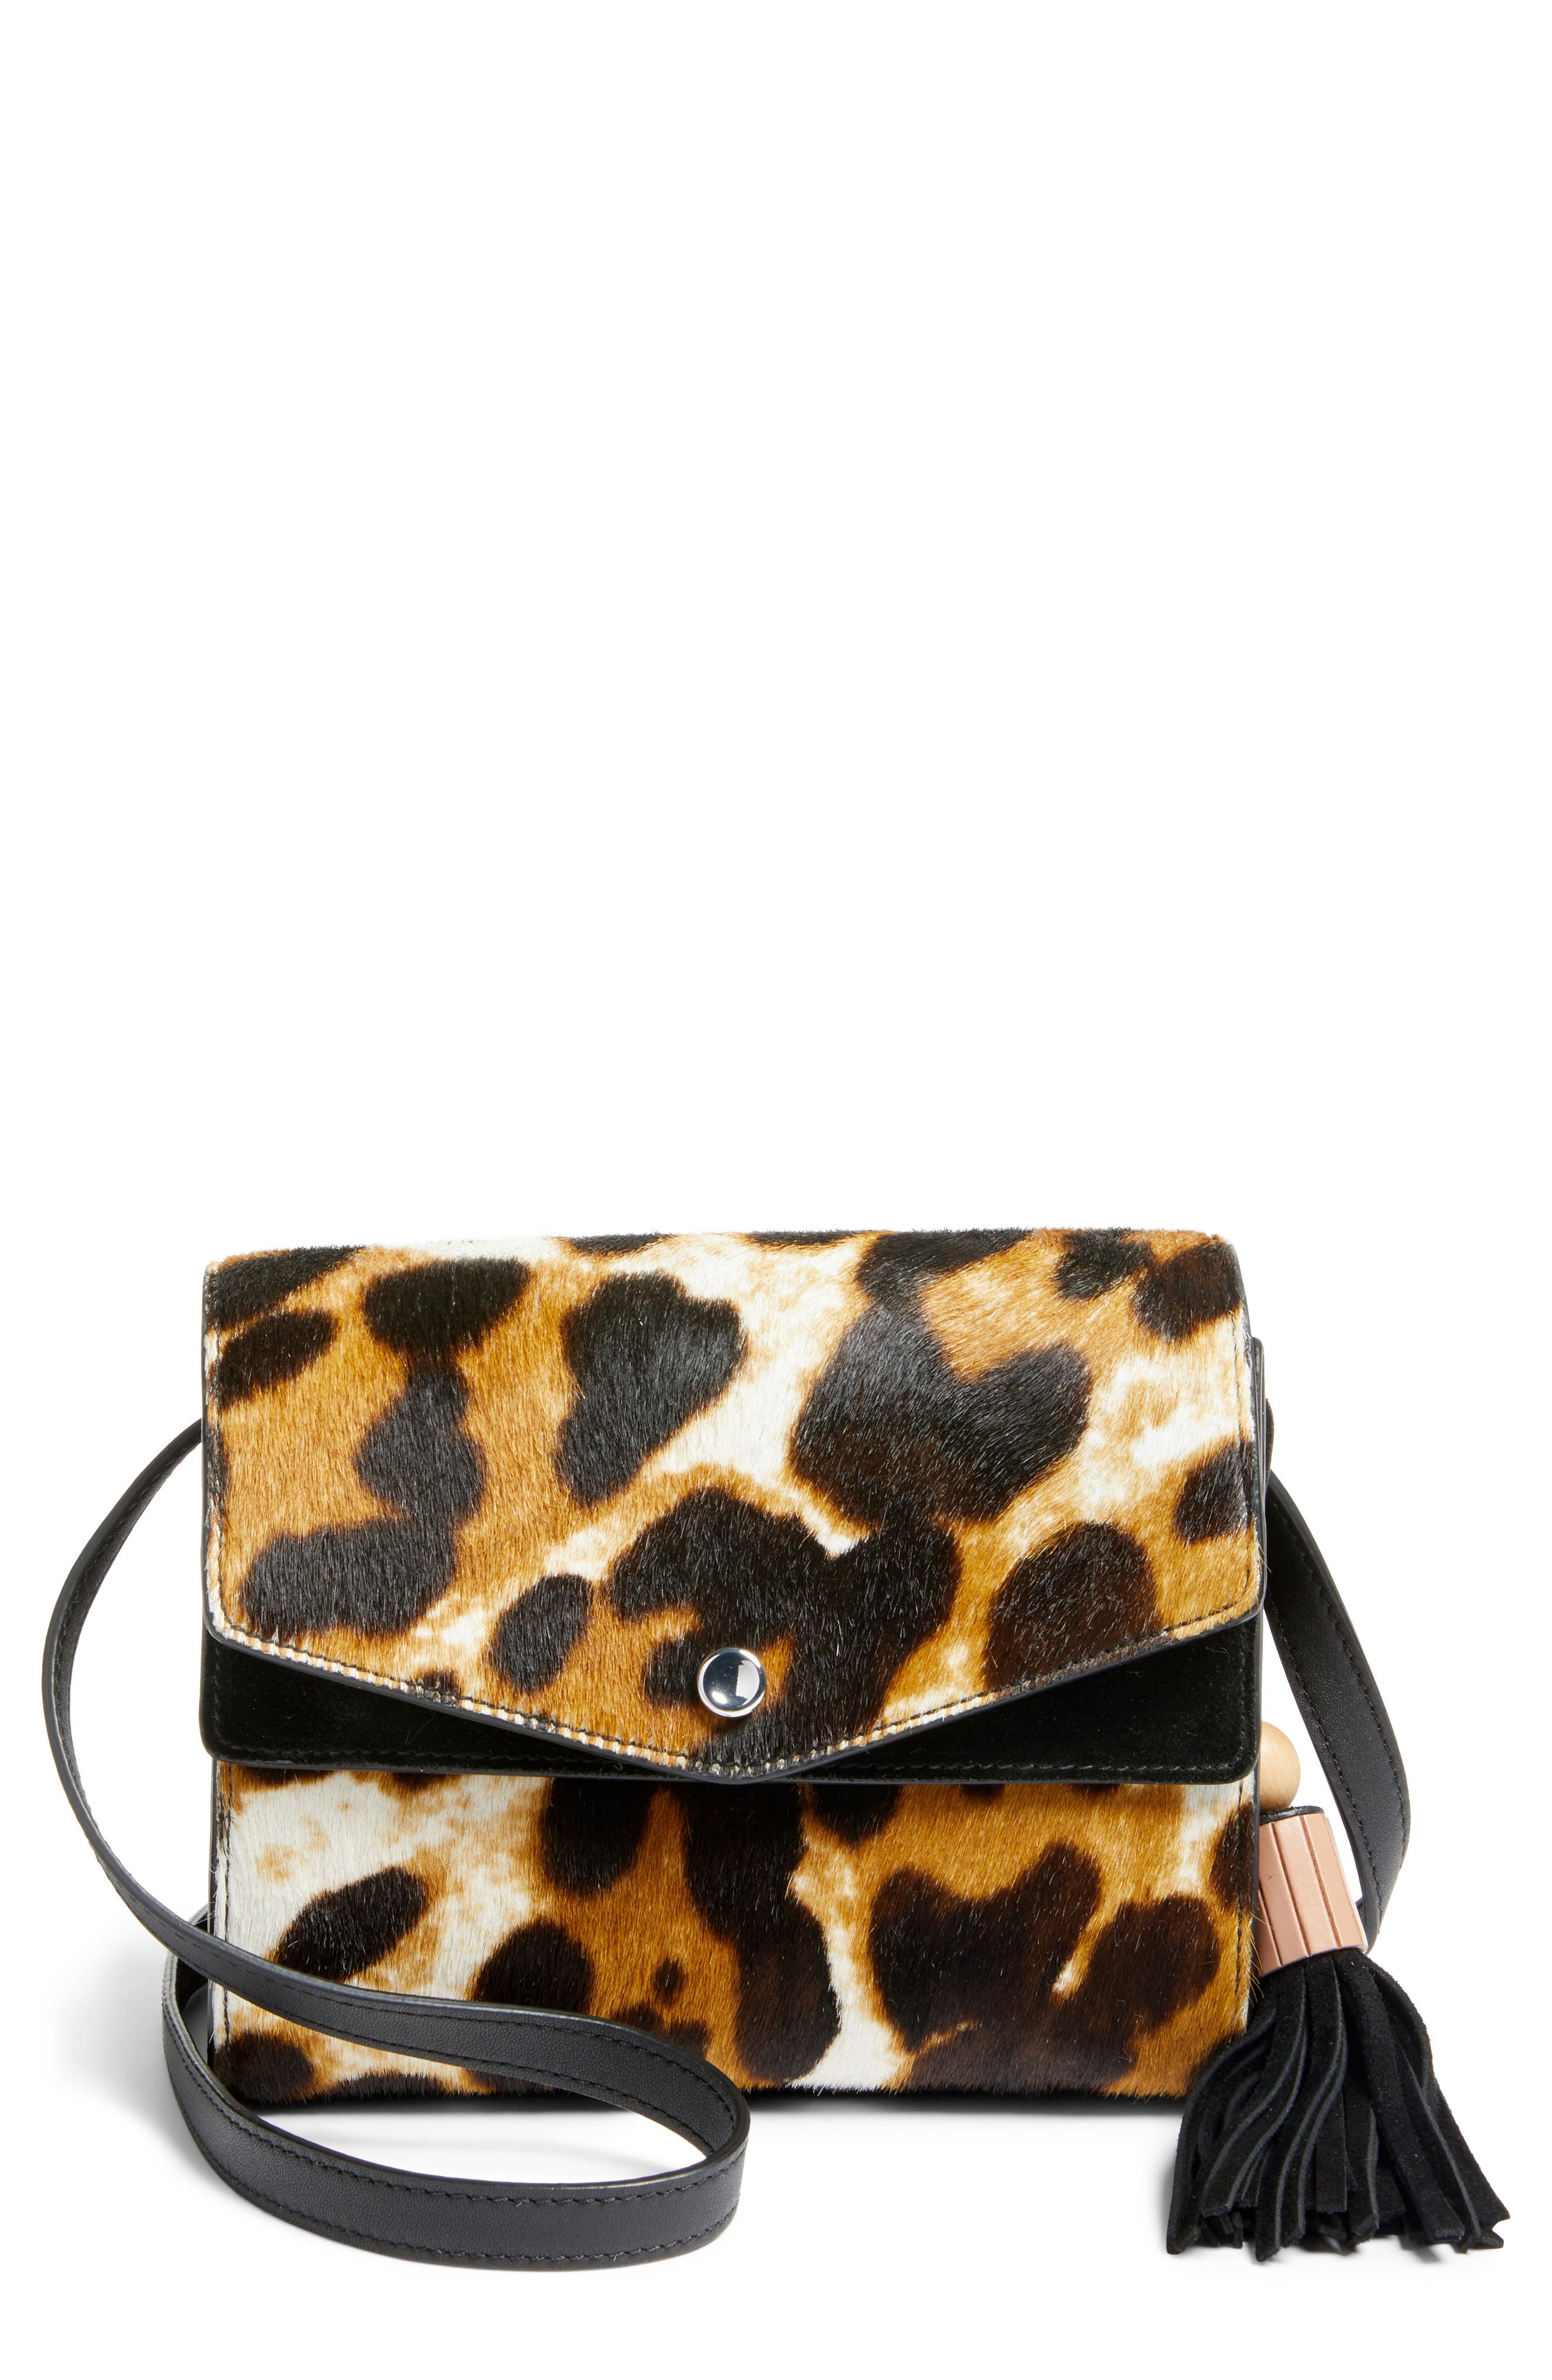 ELIZABETH AND JAMES Eloise Genuine Calf Hair Field Crossbody Bag